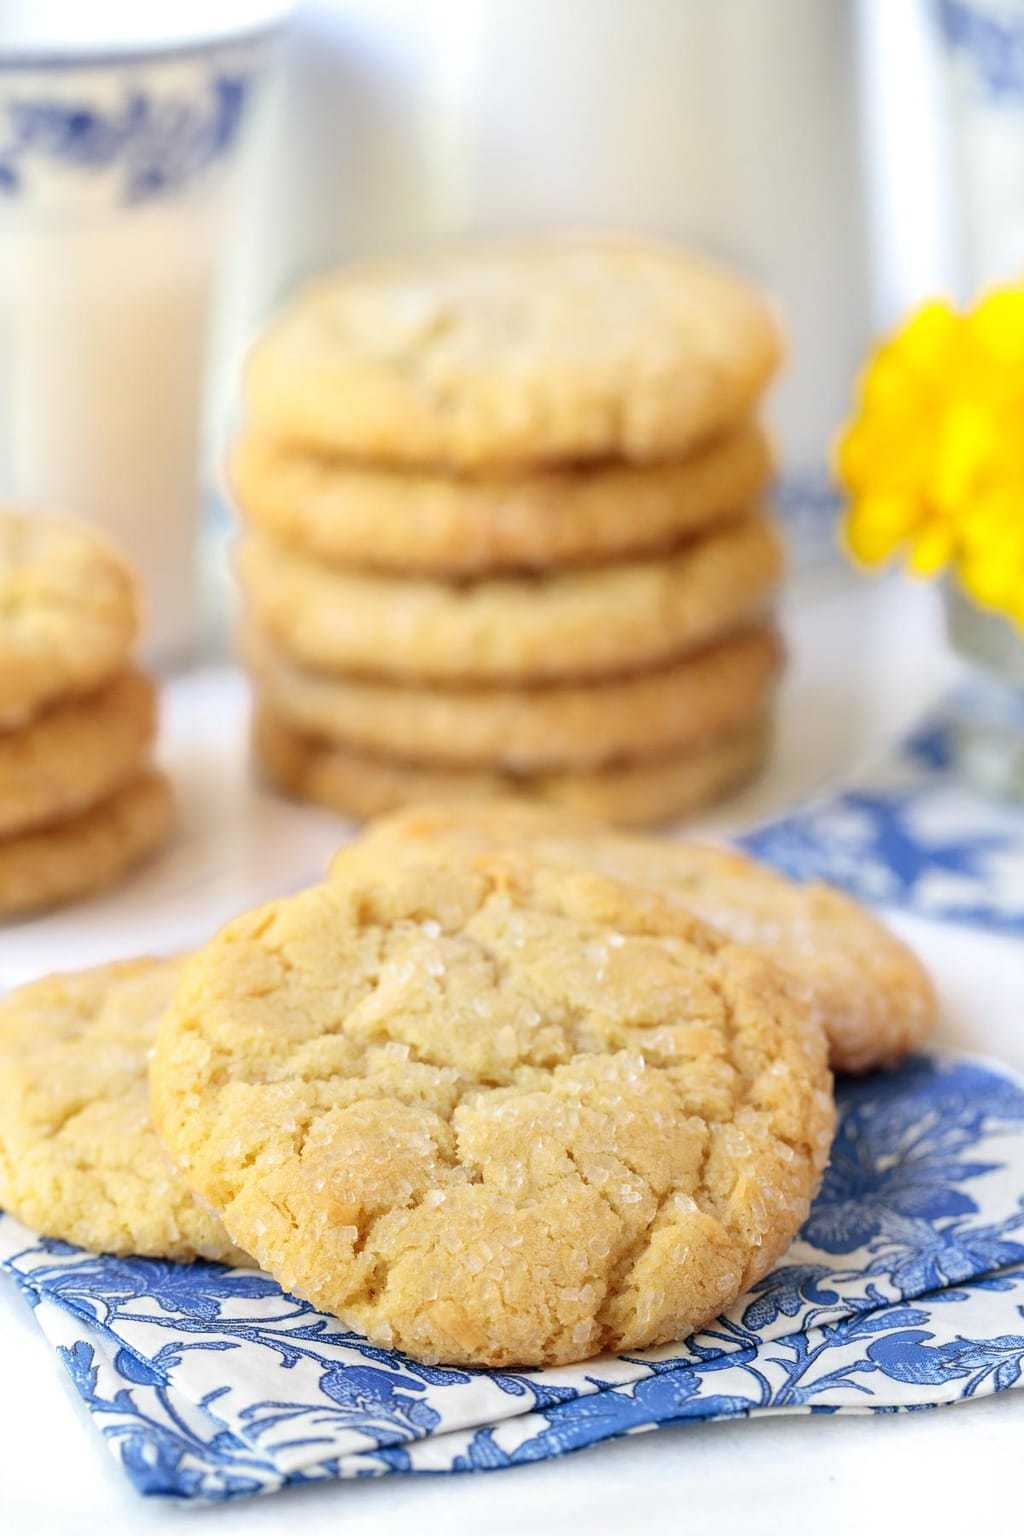 If you love one-bowl, no-mixer, cookies with crisp edges and chewy centers, raise your hand. Hello, Lemon Coconut Sugar Cookies! #lemoncookies, #onebowlcookies, #easycookies